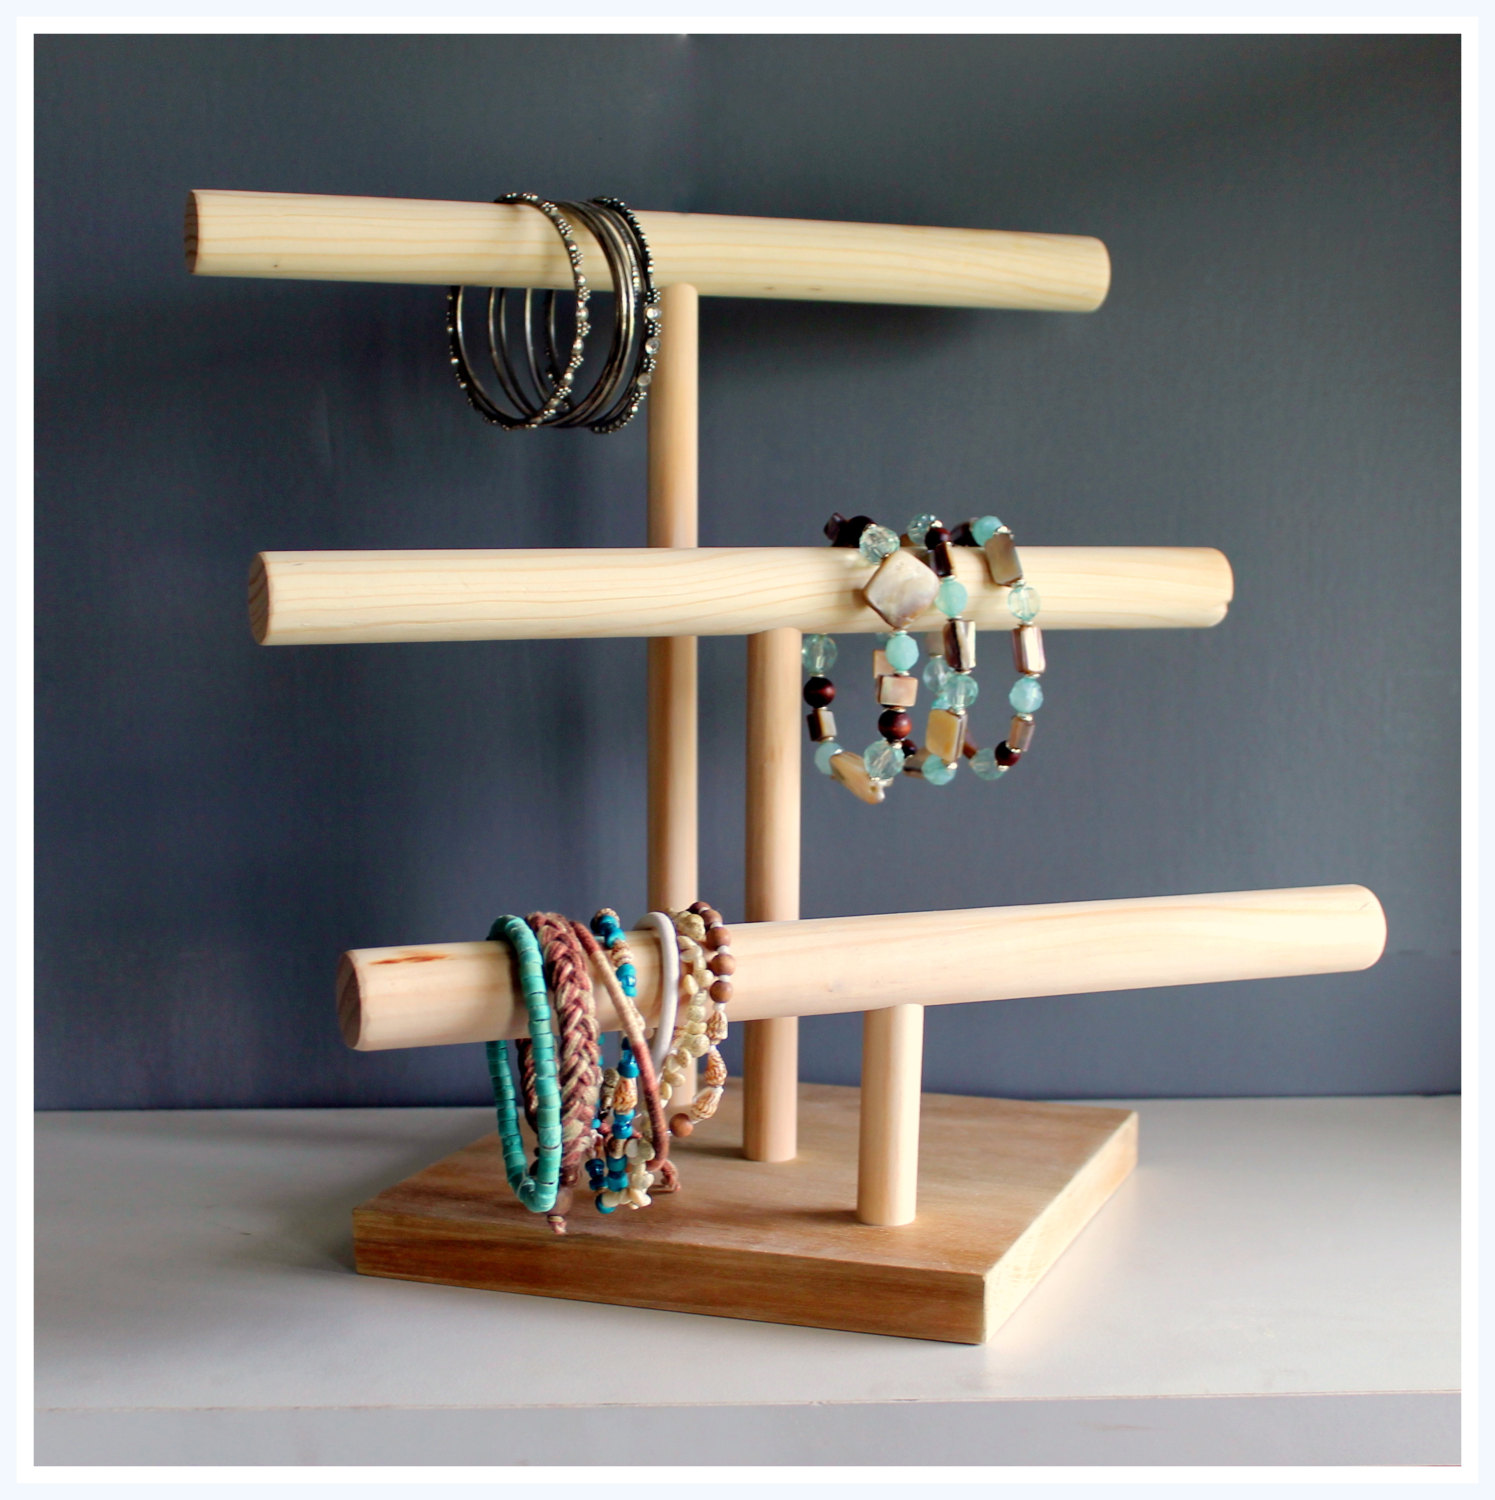 Bangle Stand Designs : Jeri s organizing decluttering news cool jewelry stands